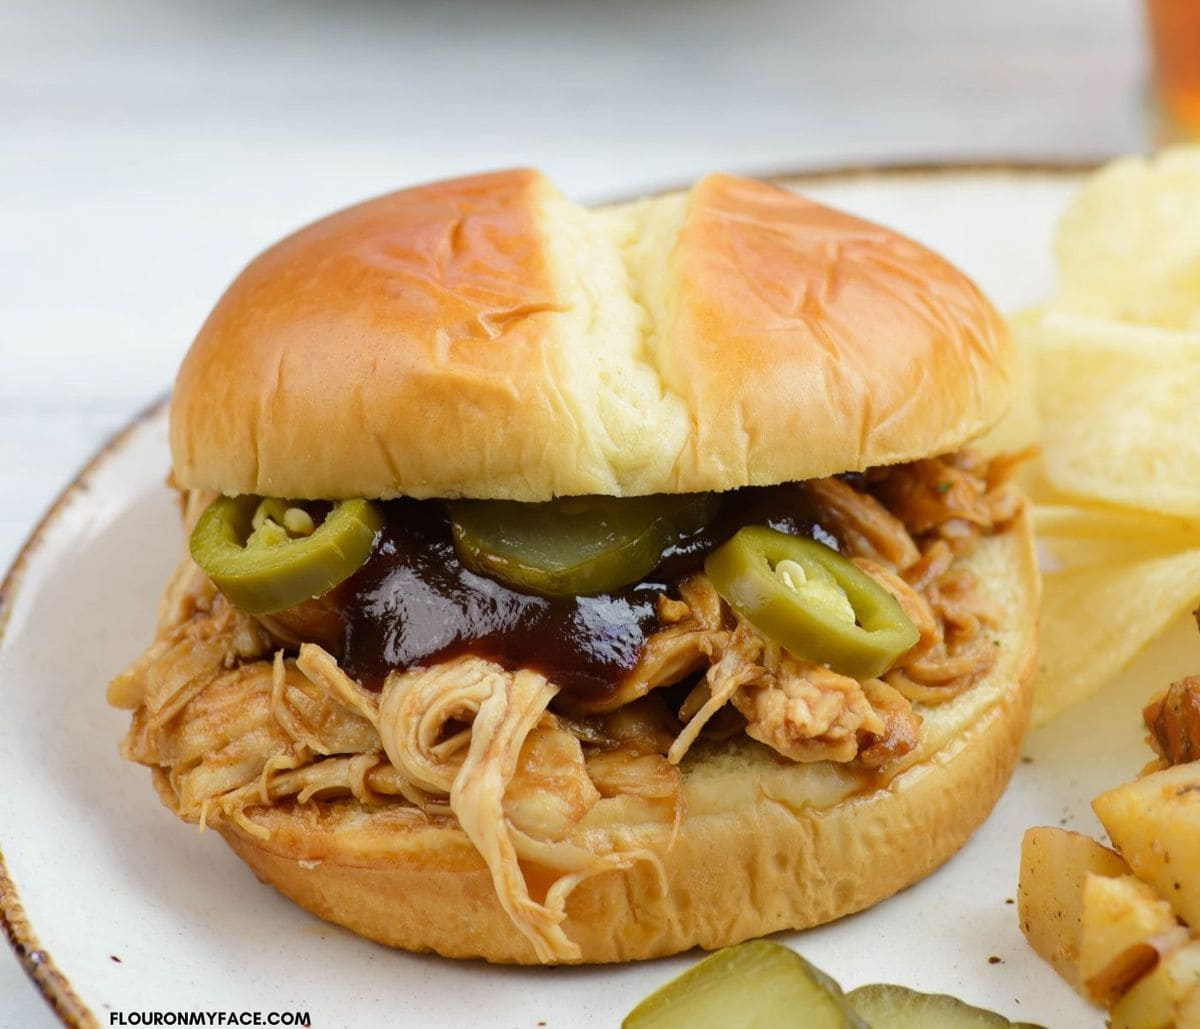 Close up photo of a barbecued chicken sandwich on a plate.